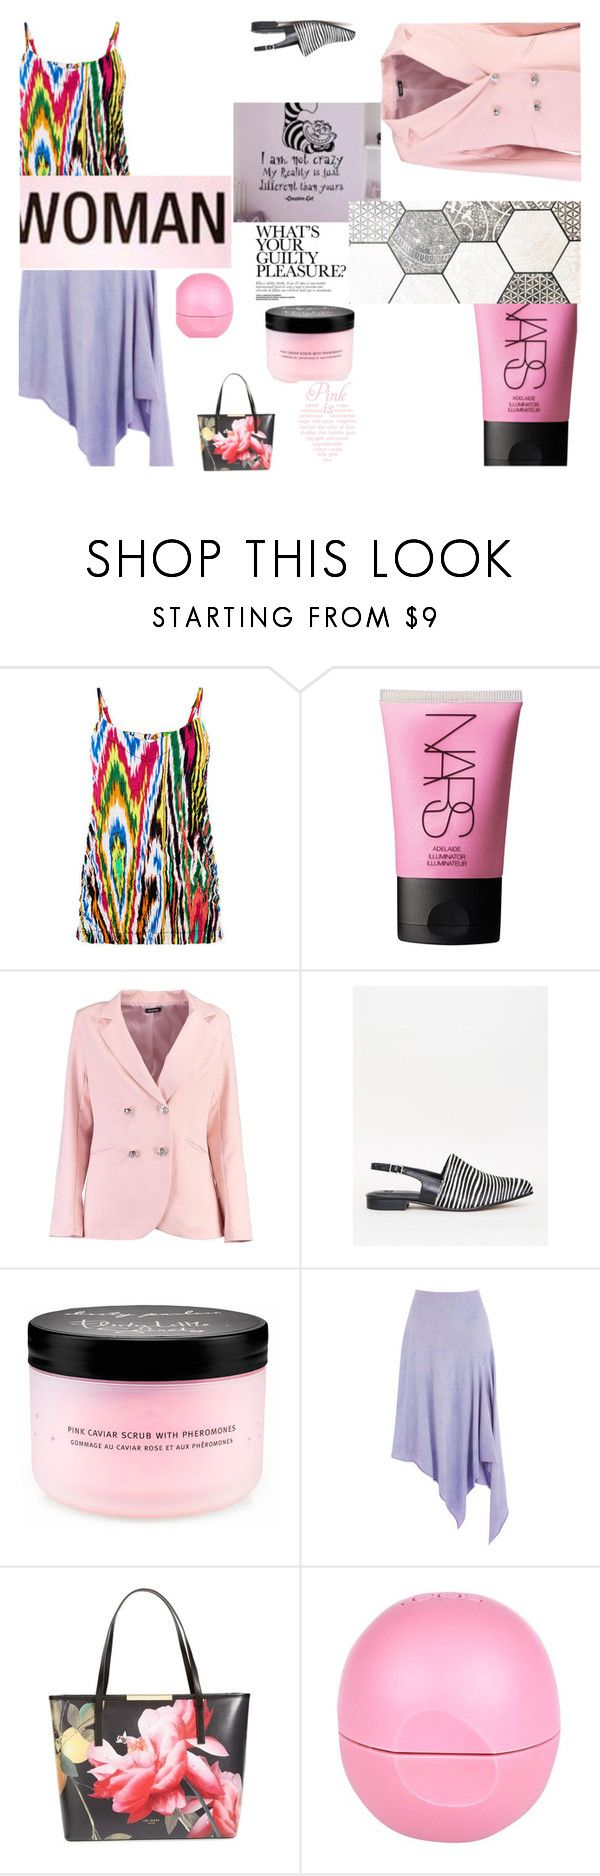 """""""Work it!"""" by peeweevaaz ❤ liked on Polyvore featuring Warehouse, NARS Cosmetics, Victoria's Secret, Ted Baker, River Island, outfit, officewear, polyvoreeditorial and polyvorefashion"""